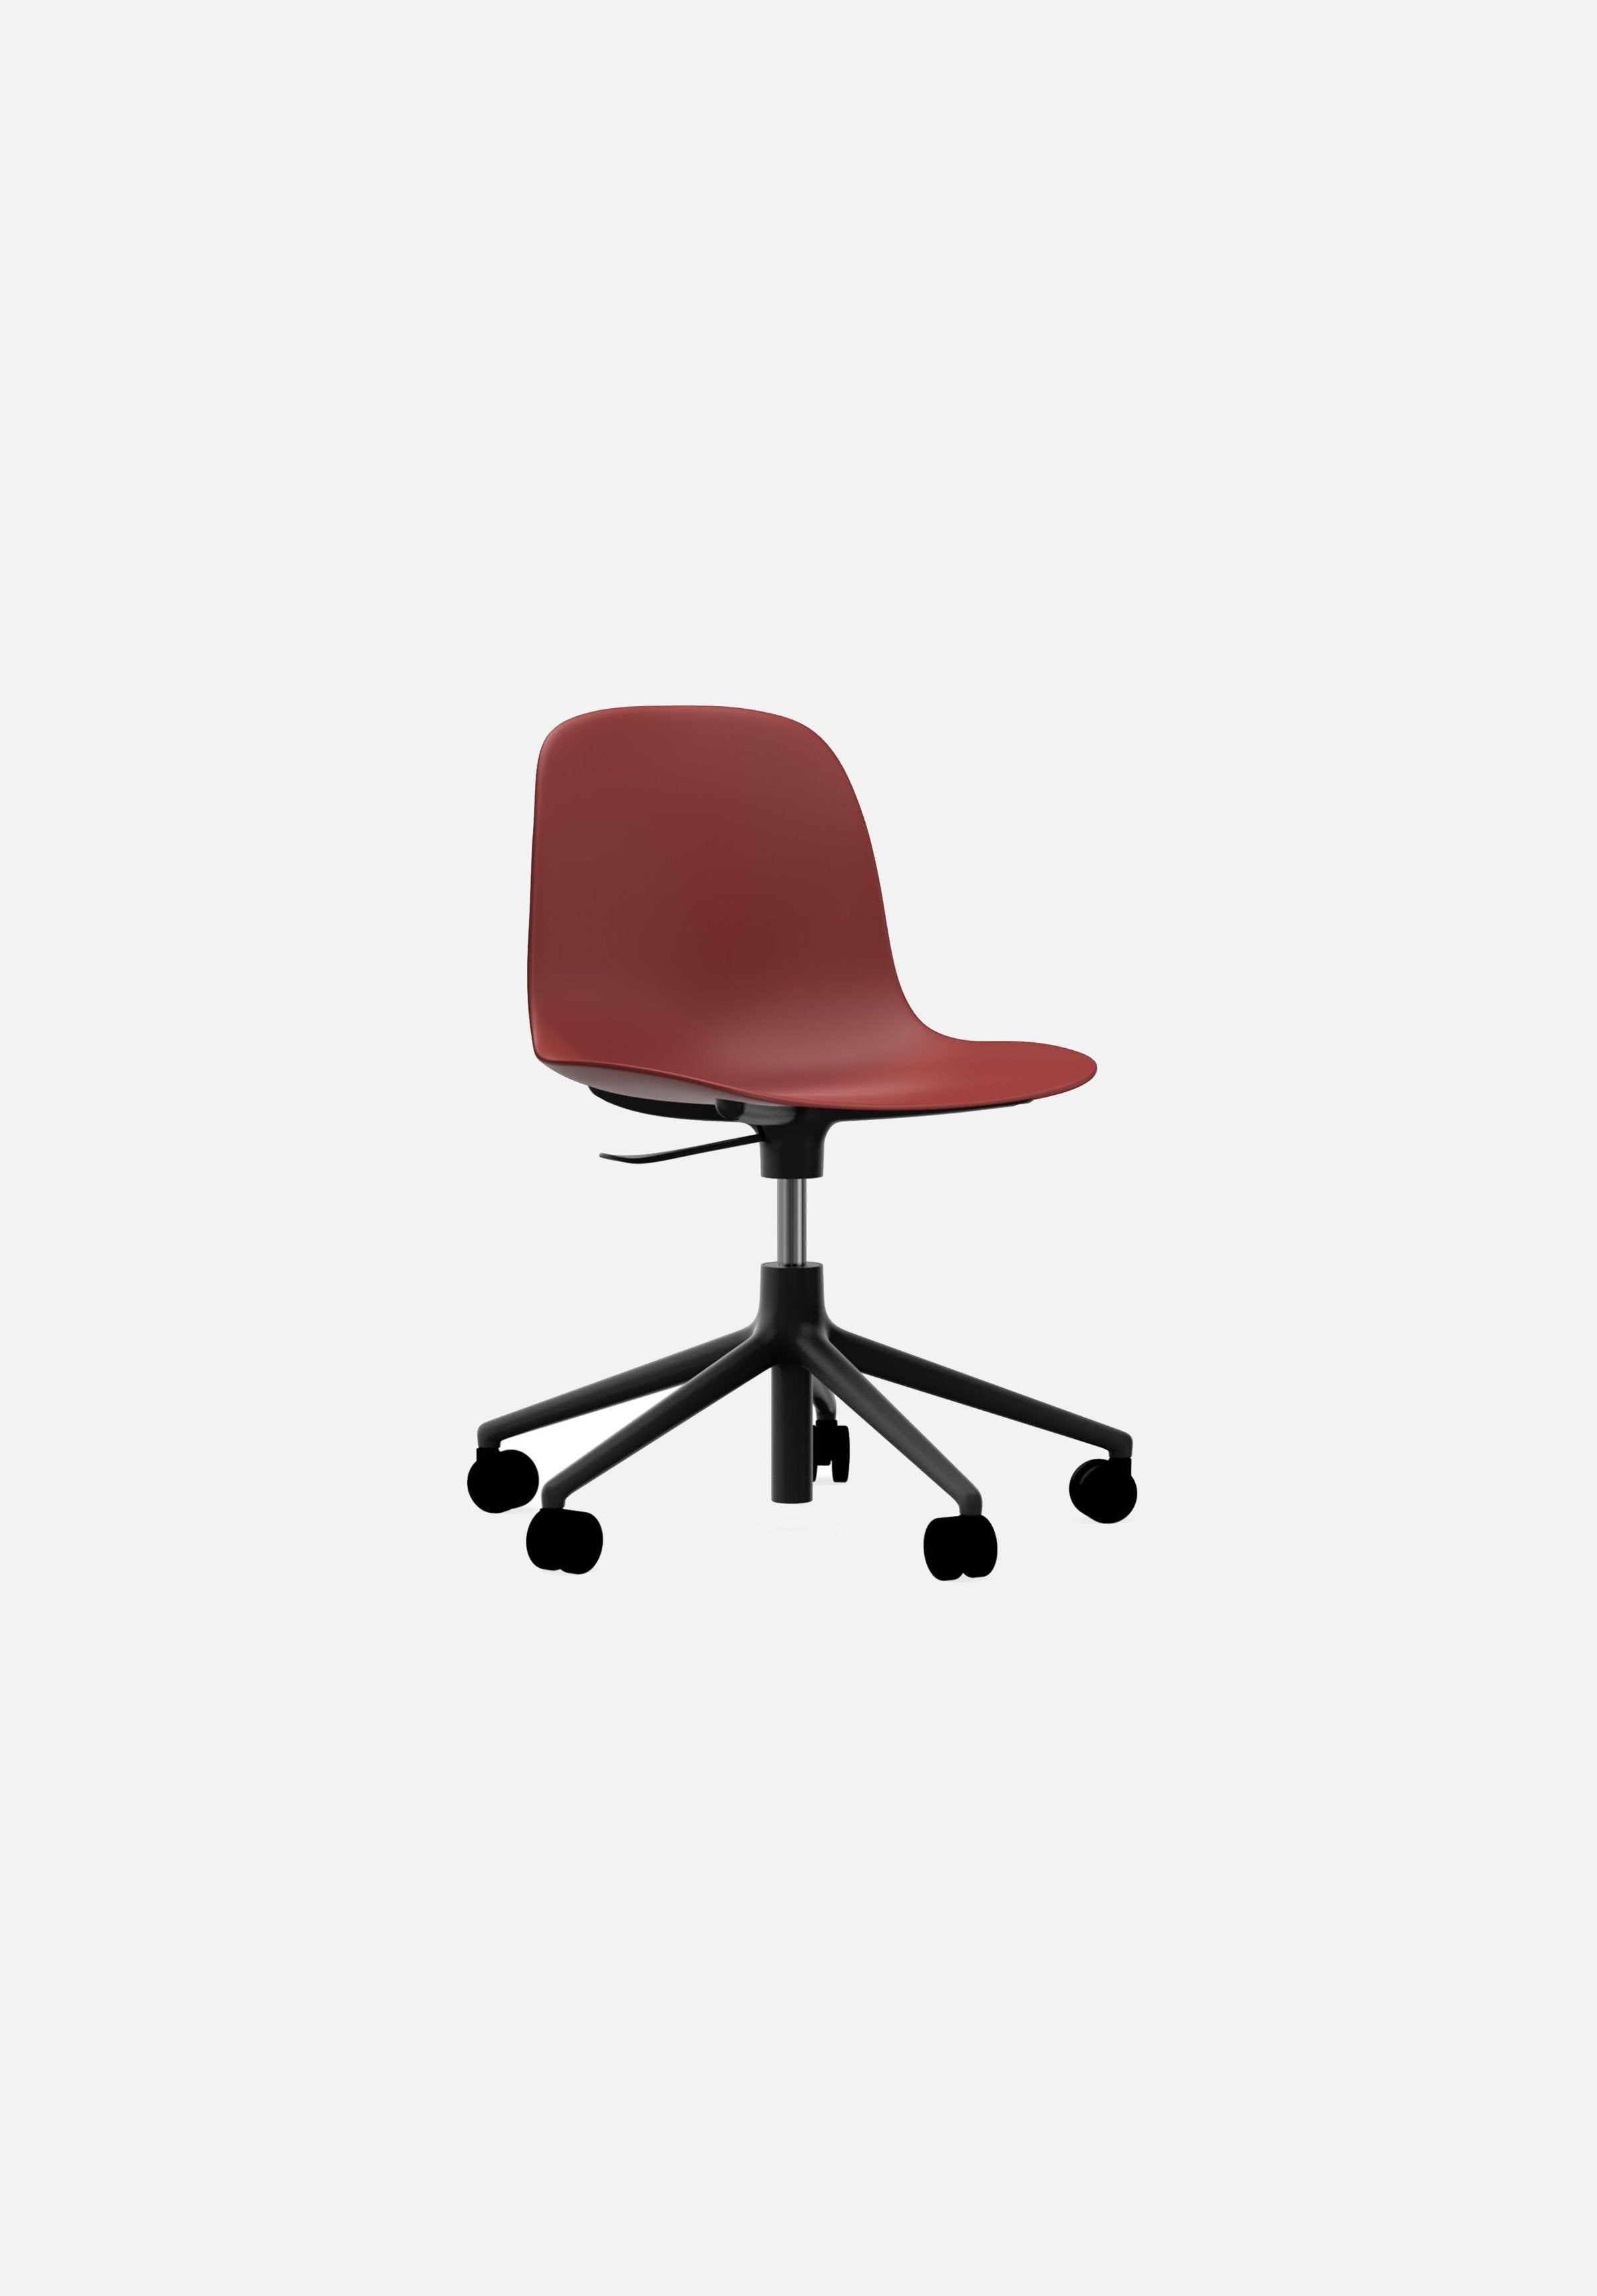 Form Chair — Swivel Gaslift-Simon Legald-Normann Copenhagen-Red-Black Aluminum-Average